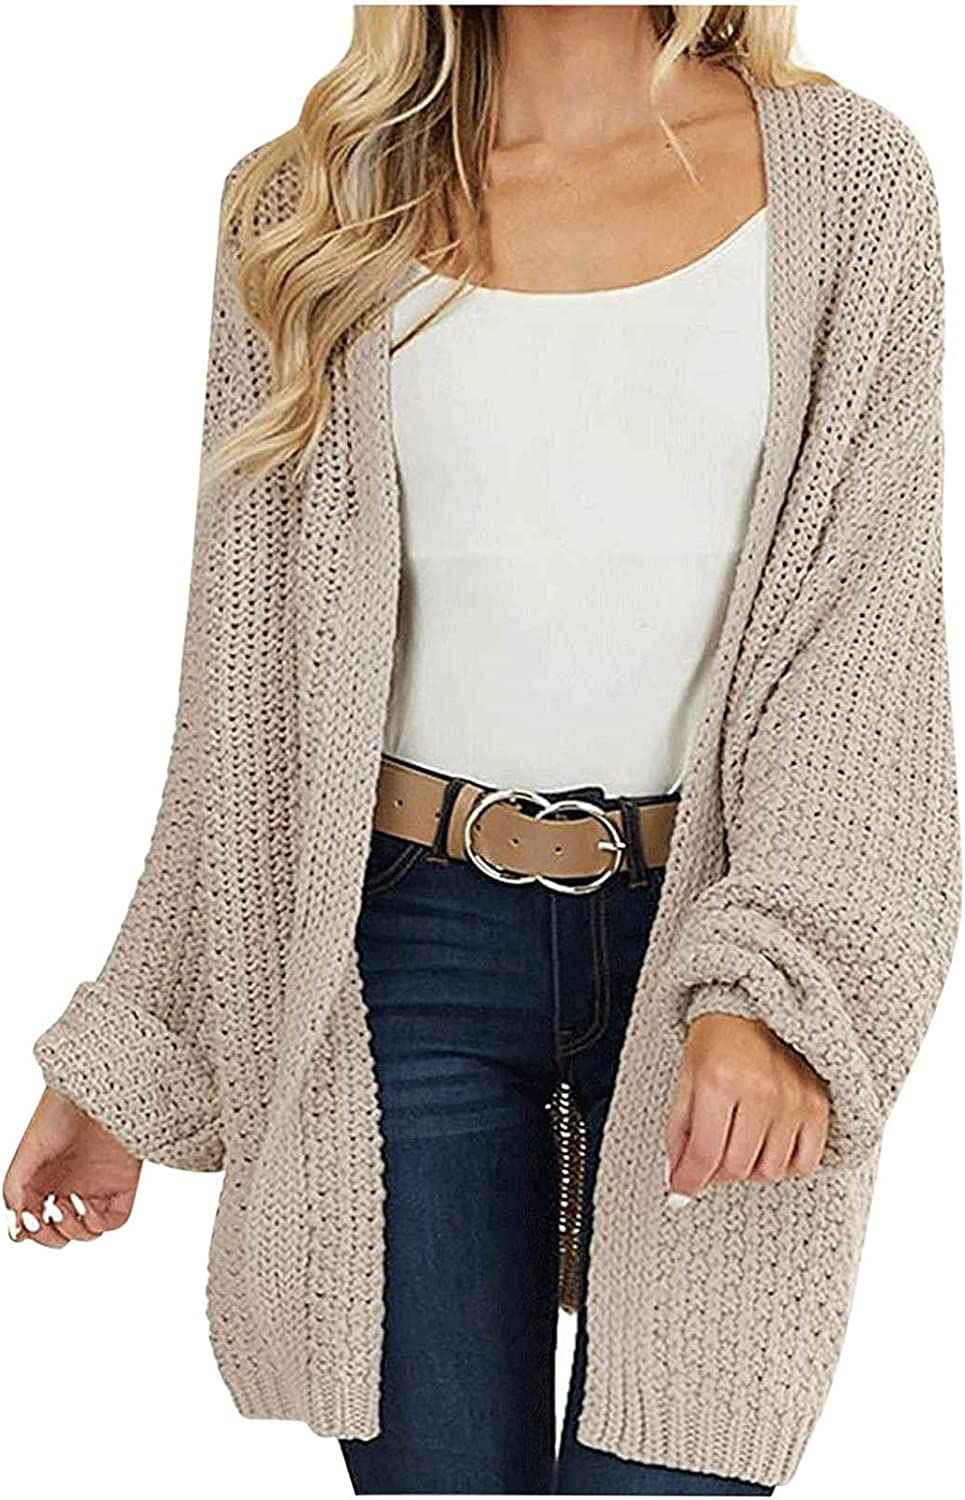 Sweaters for Women Casual Solid Cardigan Fashion V-Neck Long Sleeve Ladies Tops Coat Thin Outerwear